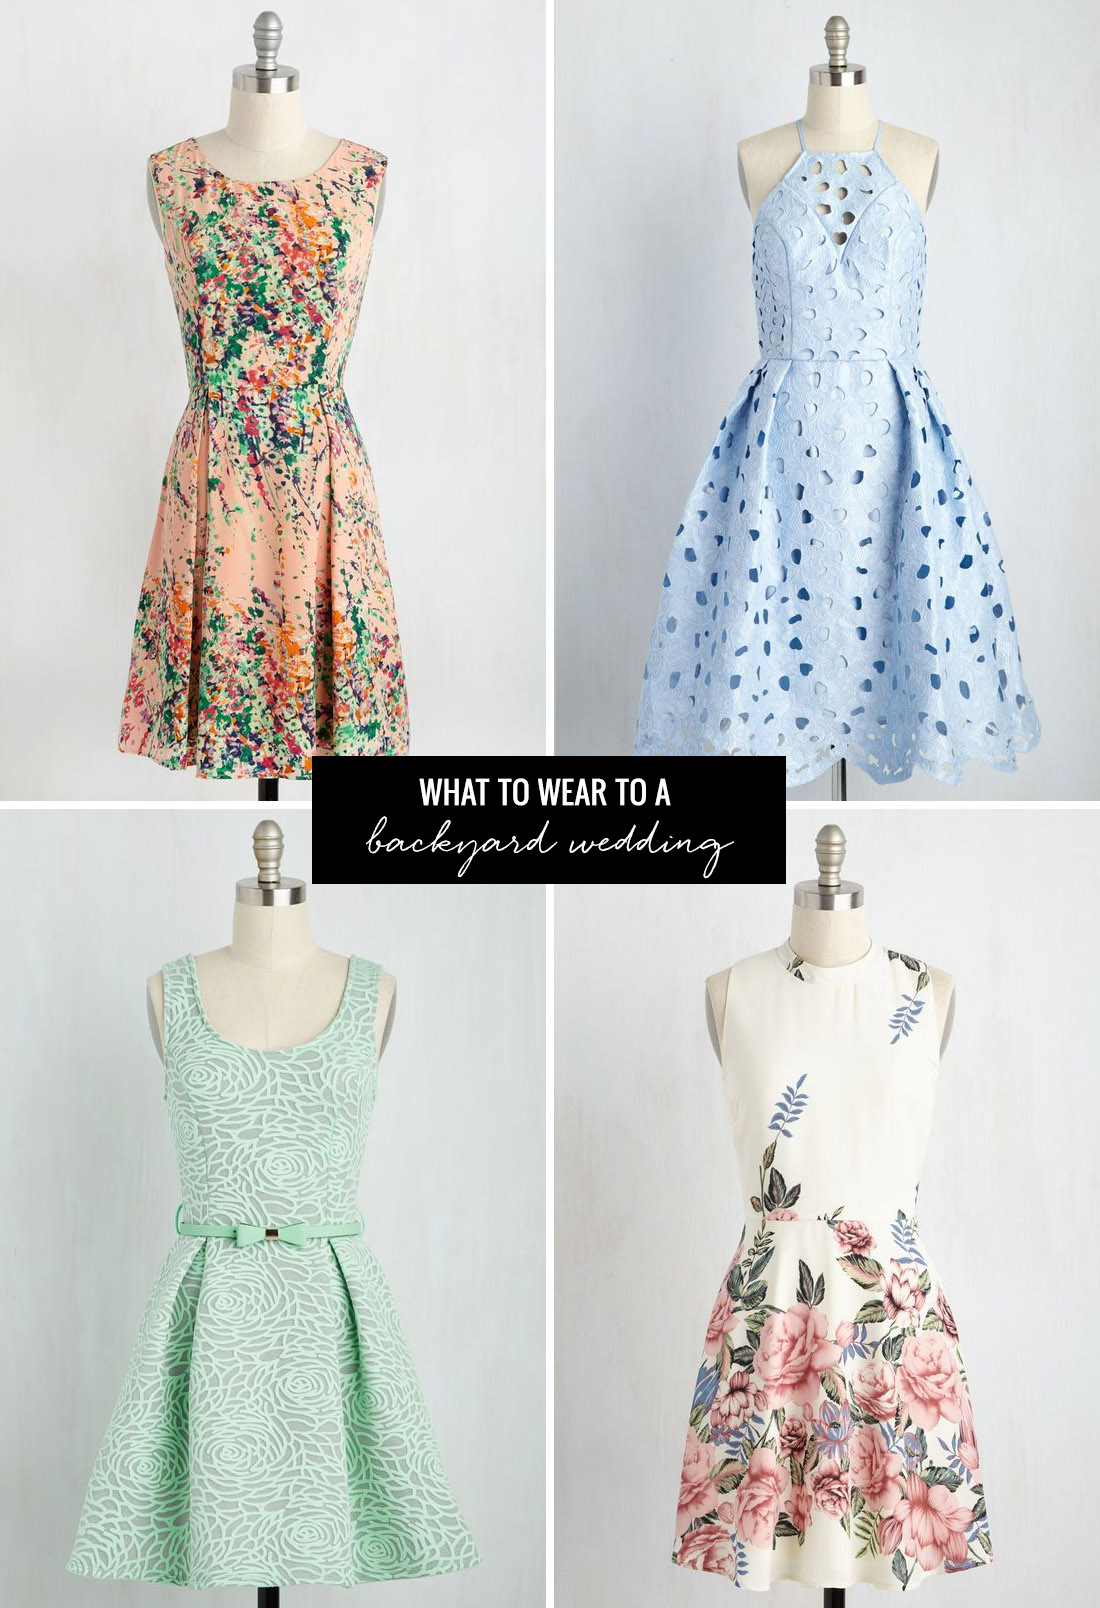 What To Wear To A Summer Wedding With ModCloth